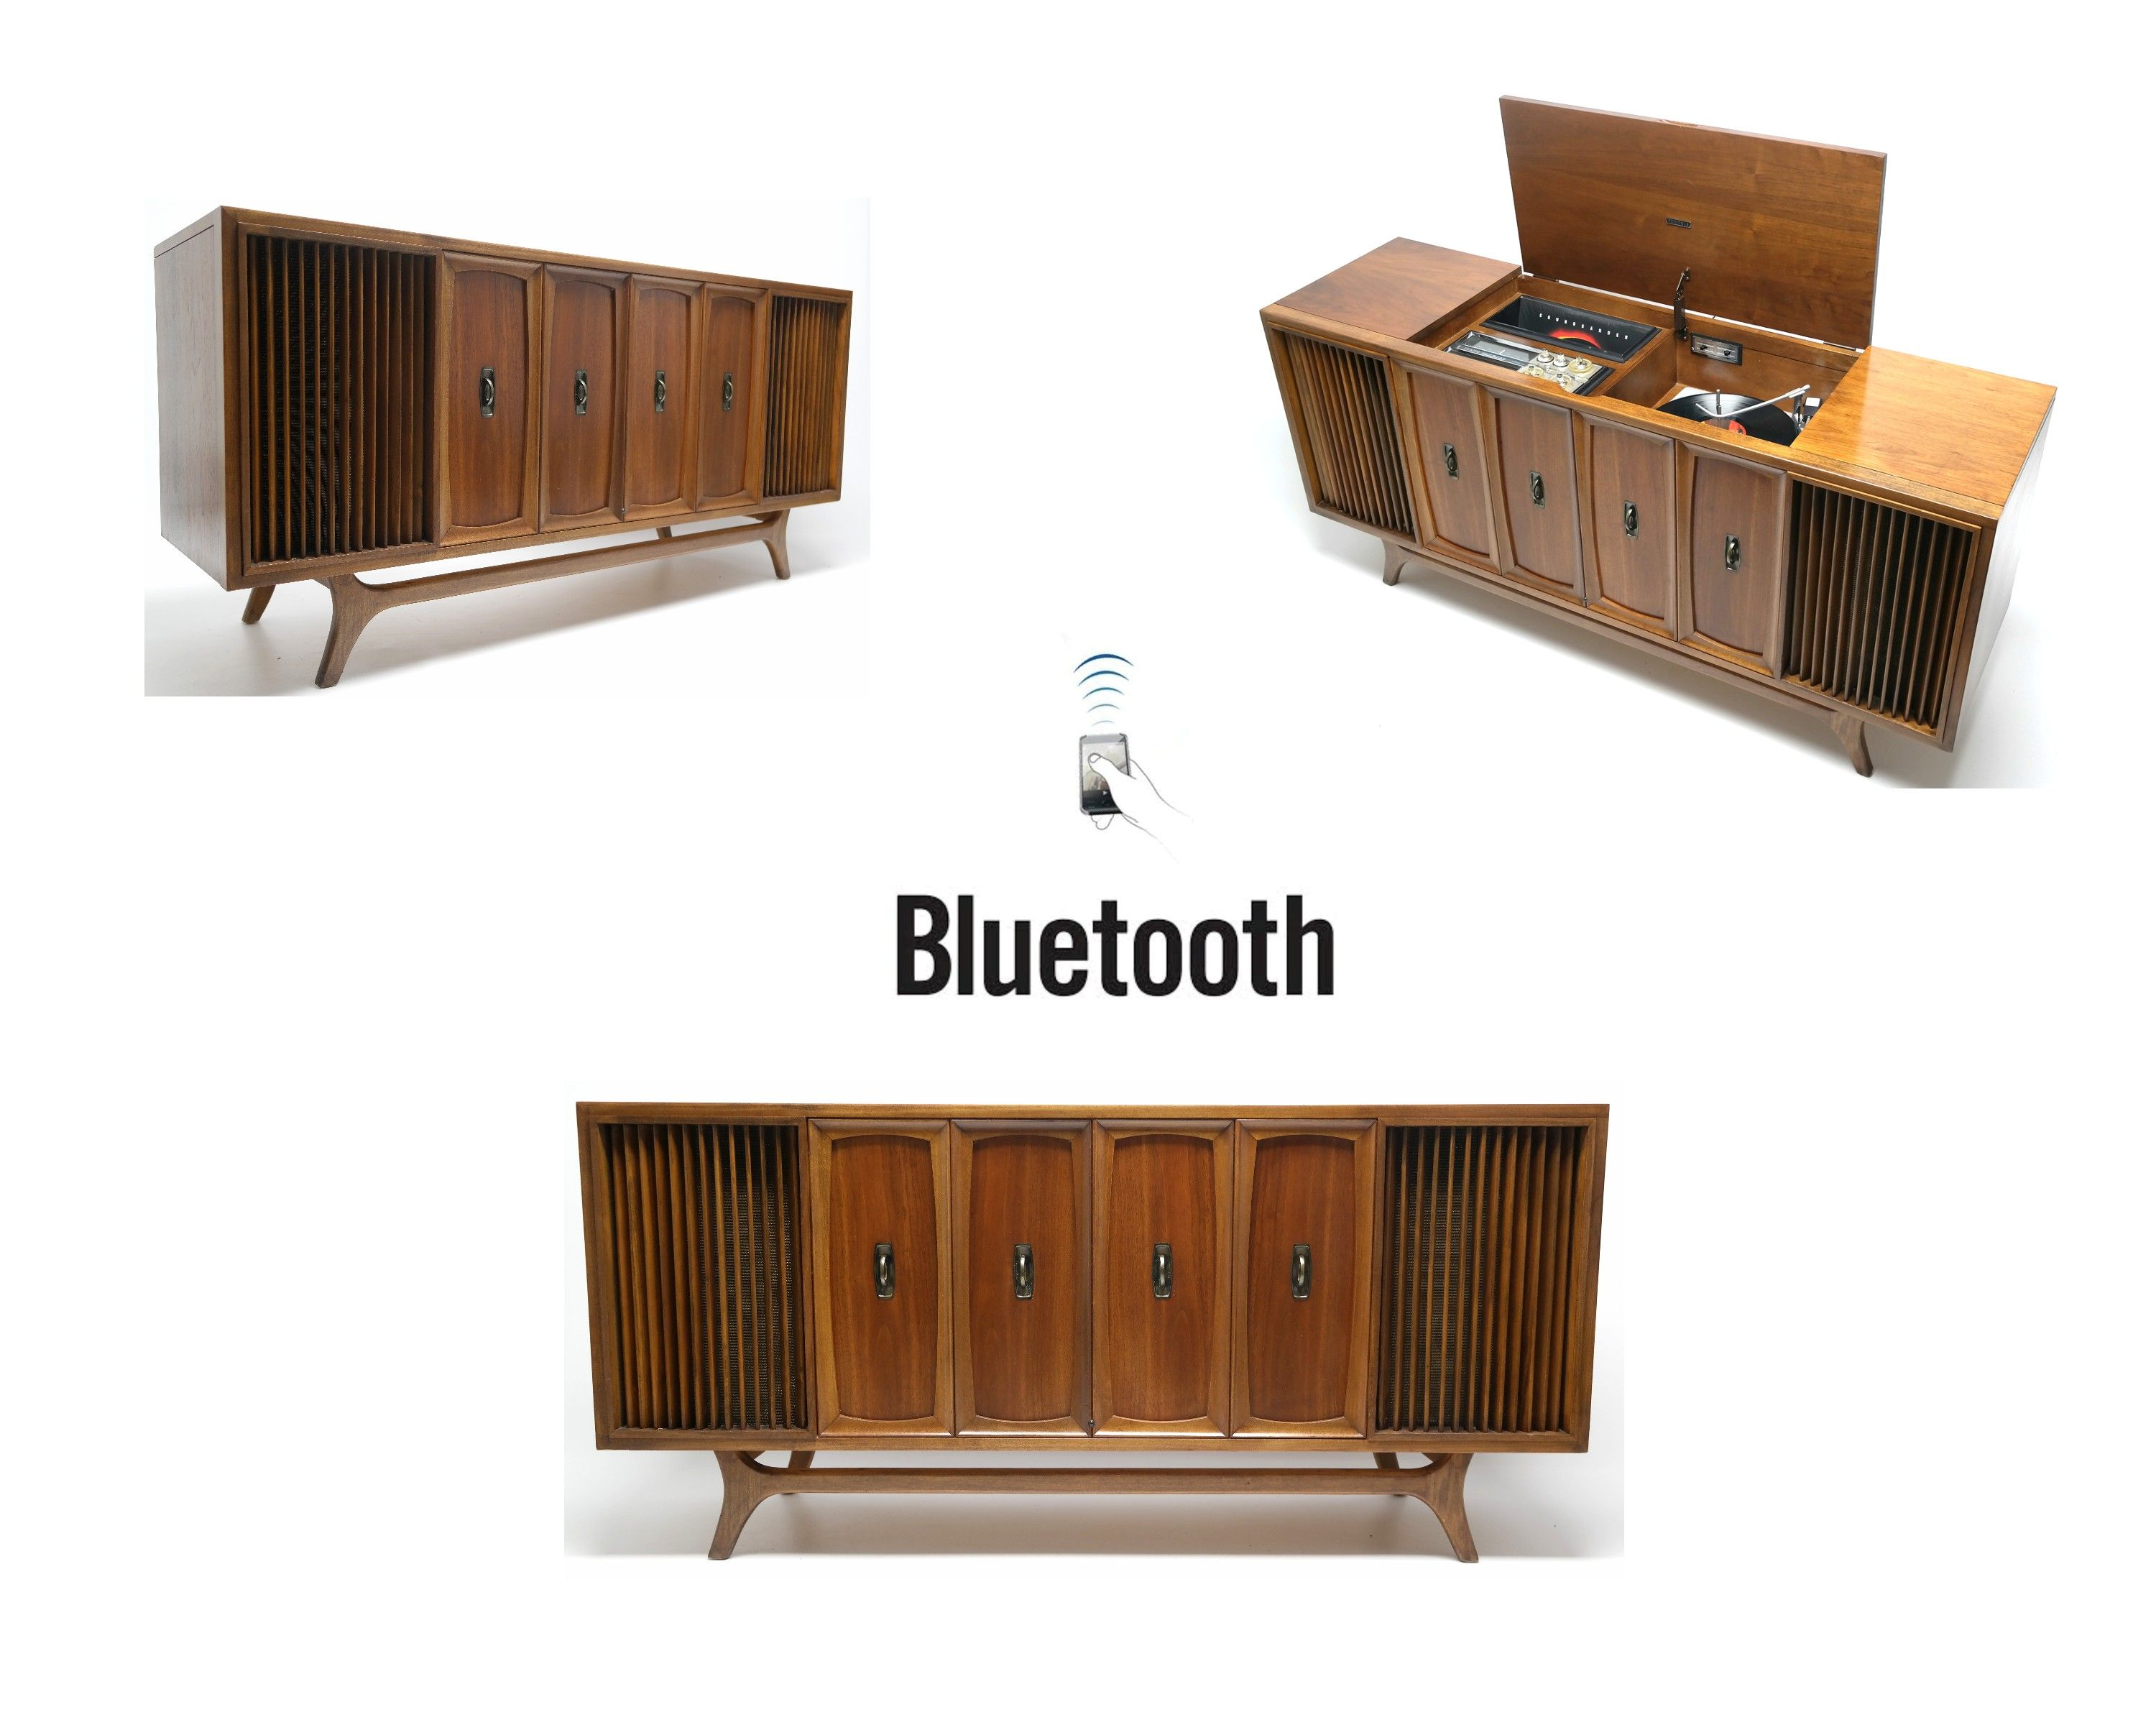 Zenith Vintage Stereo Console Cabinet Record Player Vintage Record Player Vintage Record Player Cabinet Vintage Stereo Console